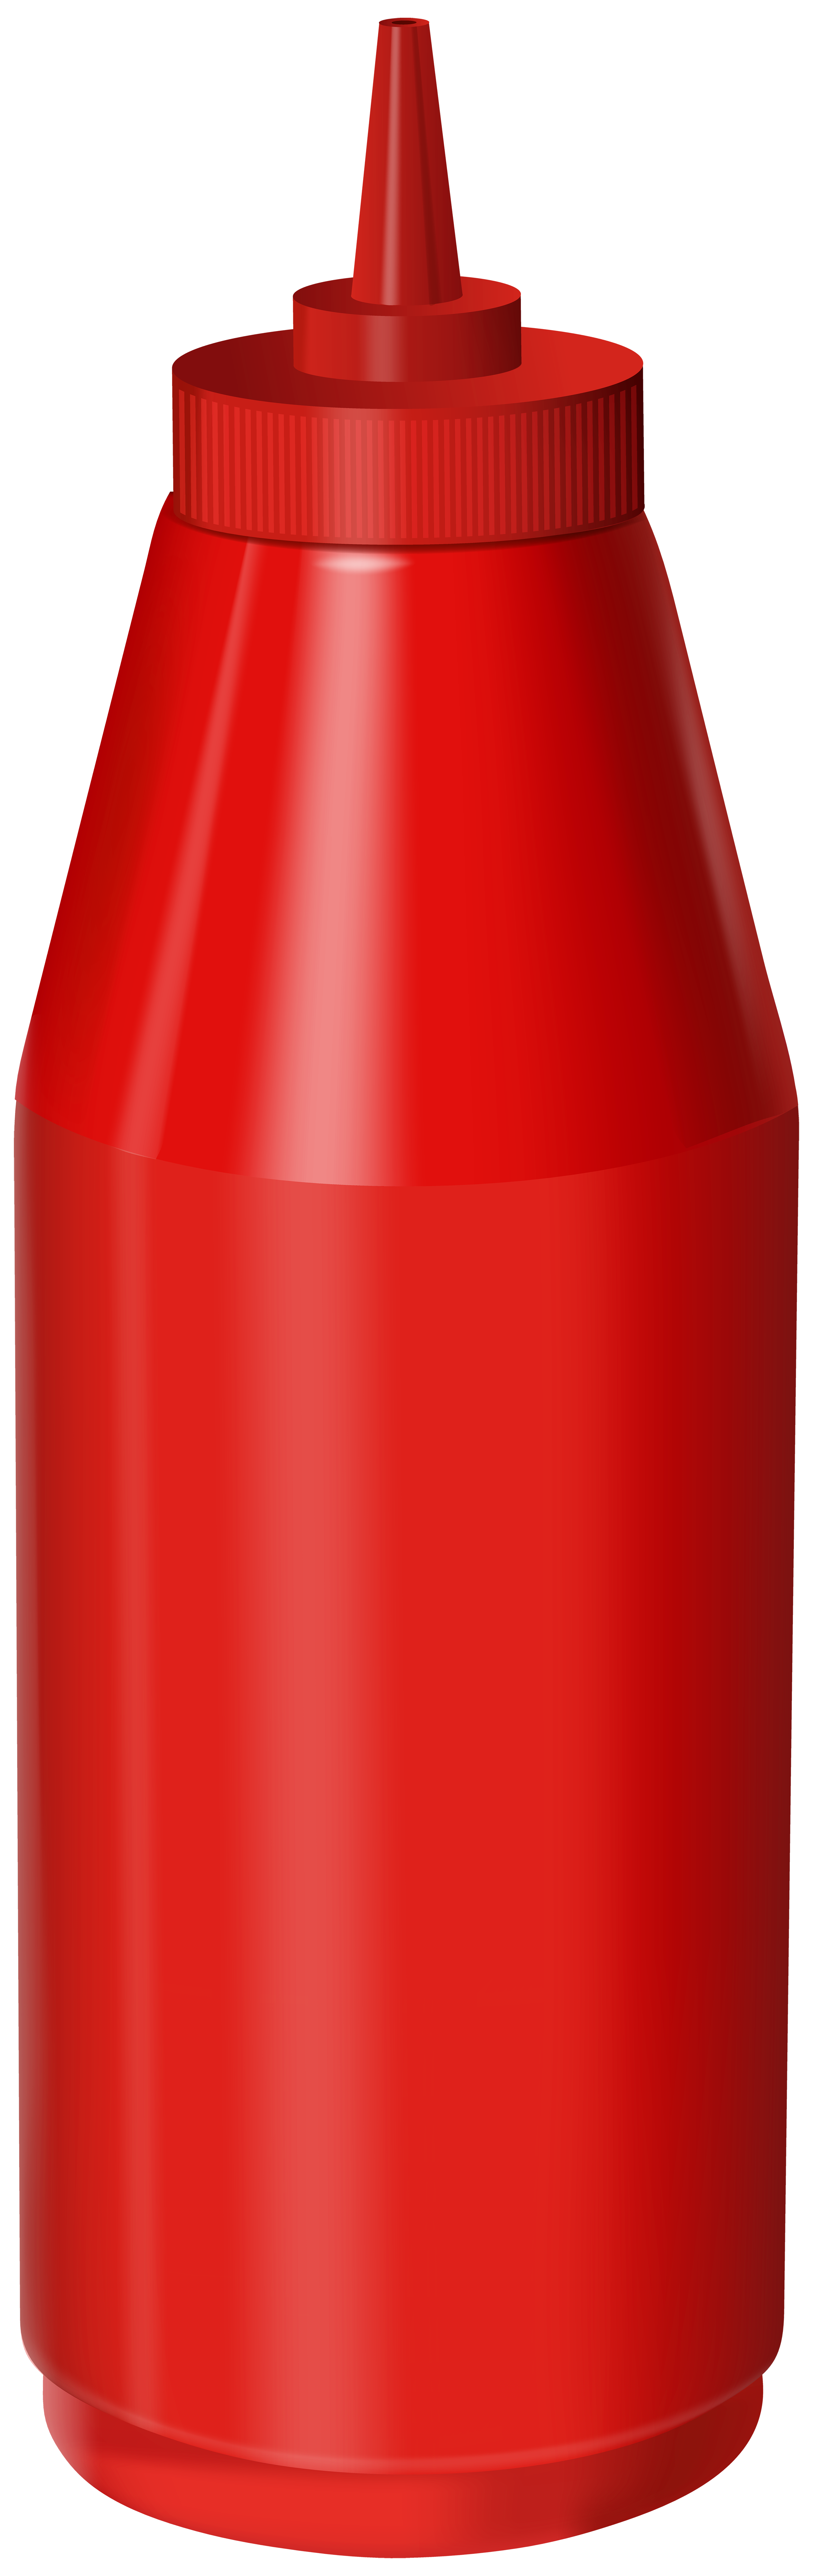 library Clip art image gallery. Ketchup clipart png